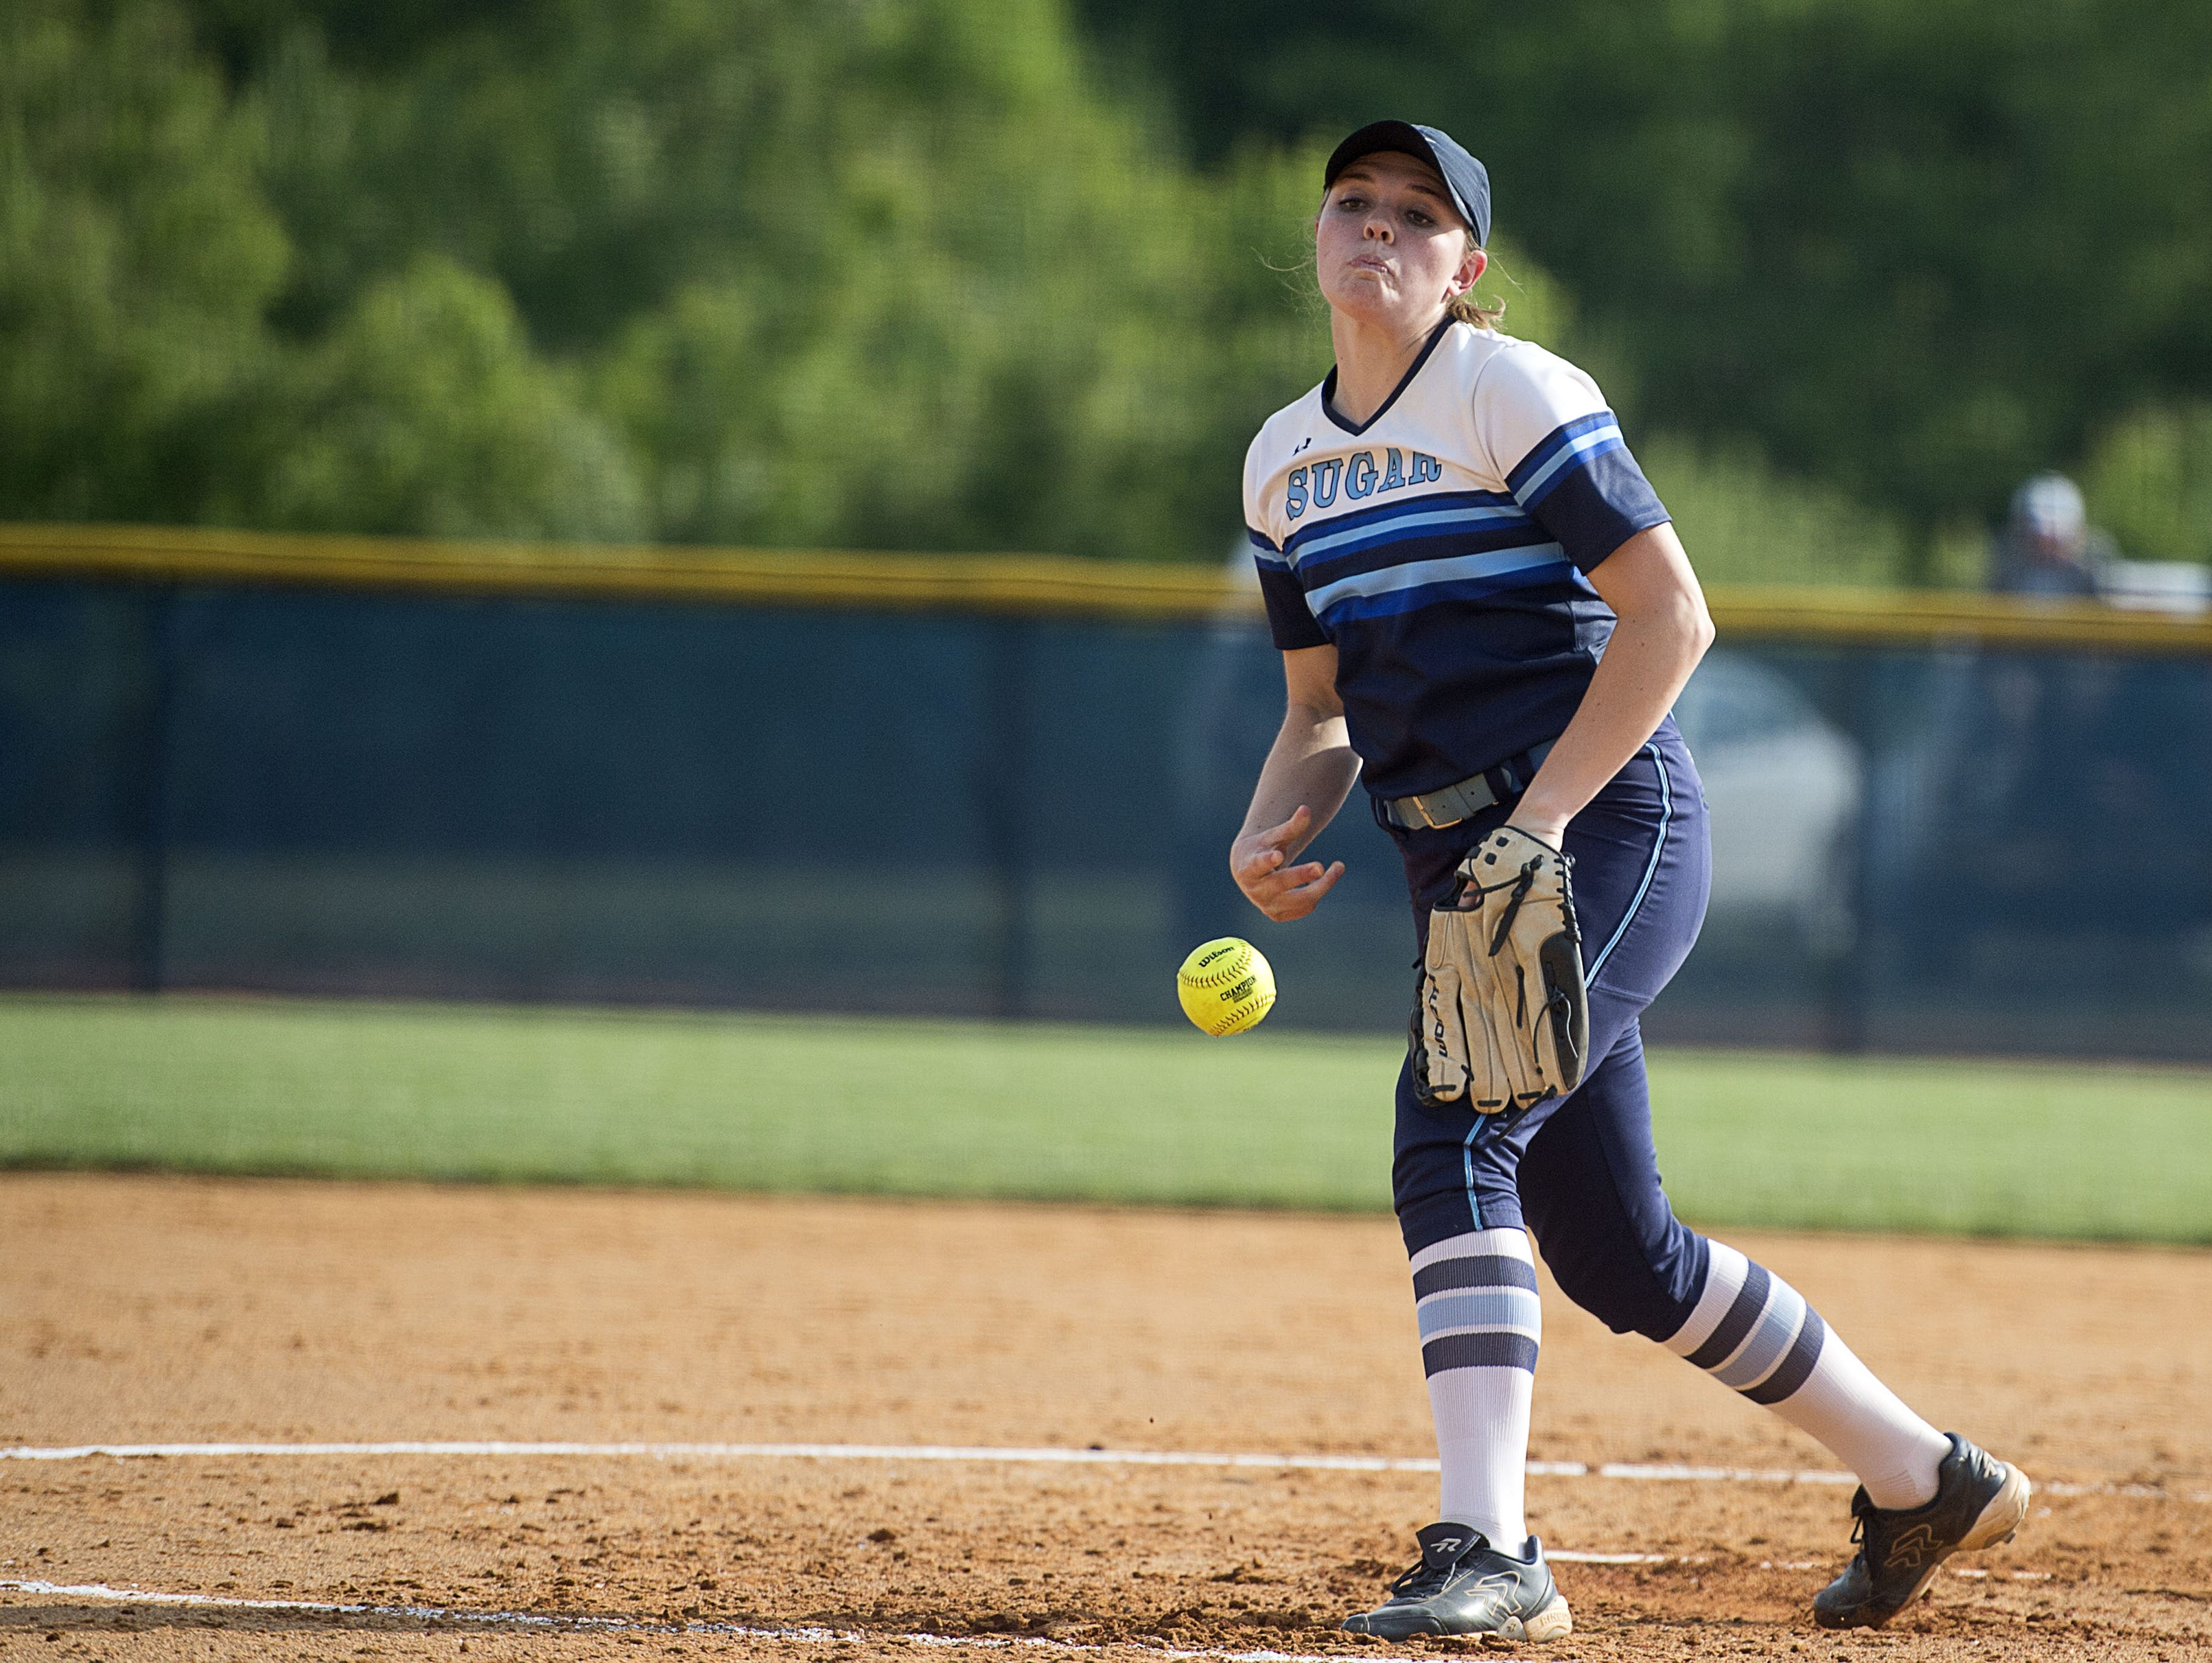 Courtney Pearson pitched Enka to a 13-1 win in Saturday's second round of the NCHSAA 3-A softball playoffs in Candler.